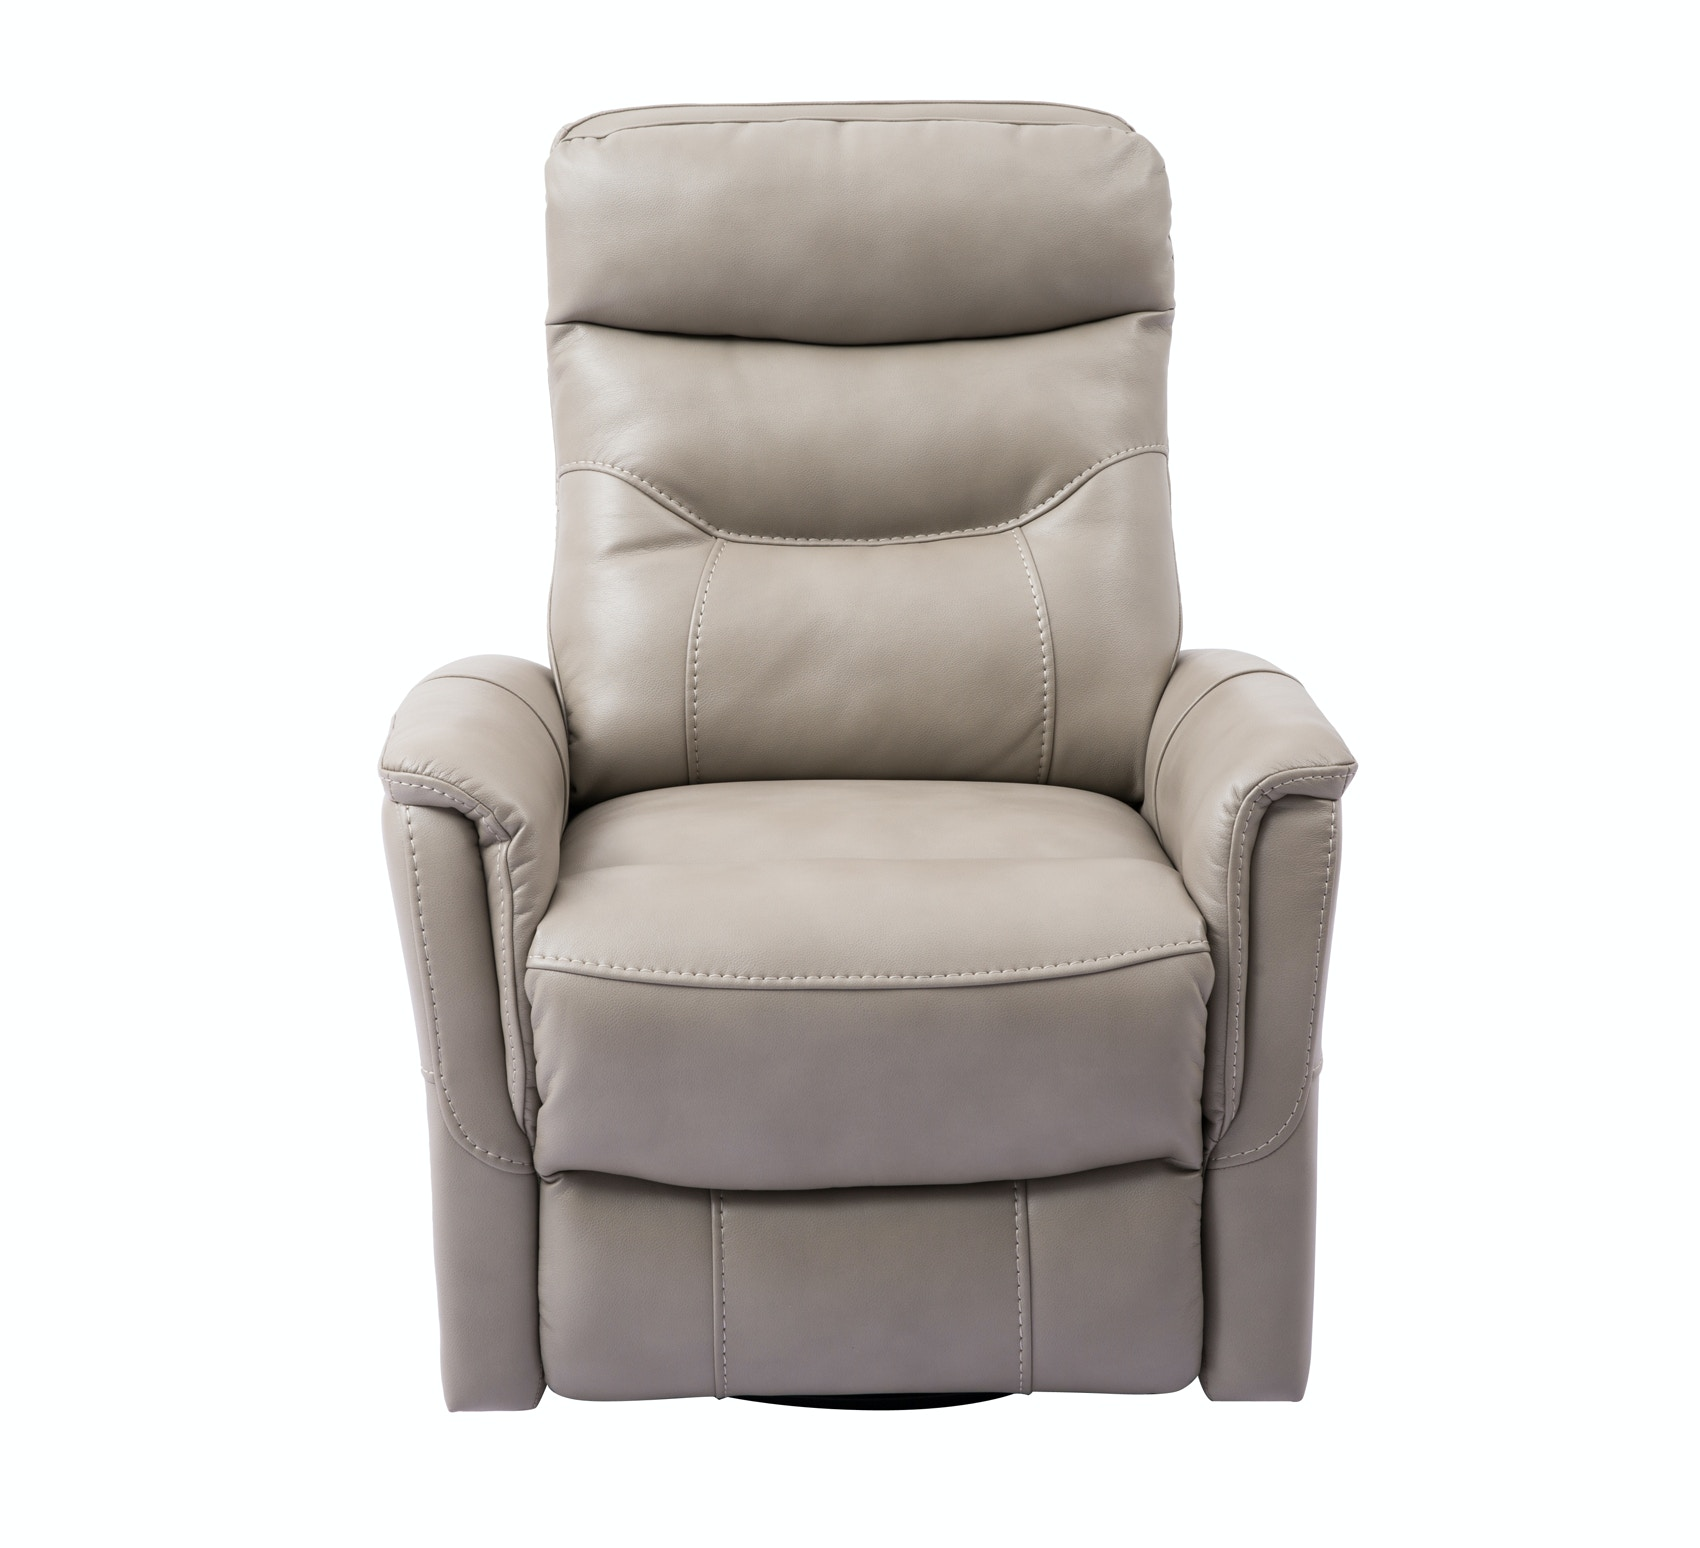 Cheers Narvik Power Swivel Recliner - Pewter 050933  sc 1 st  Furniture Fair & Cheers Living Room Narvik Power Swivel Recliner - Pewter 050933 ... islam-shia.org